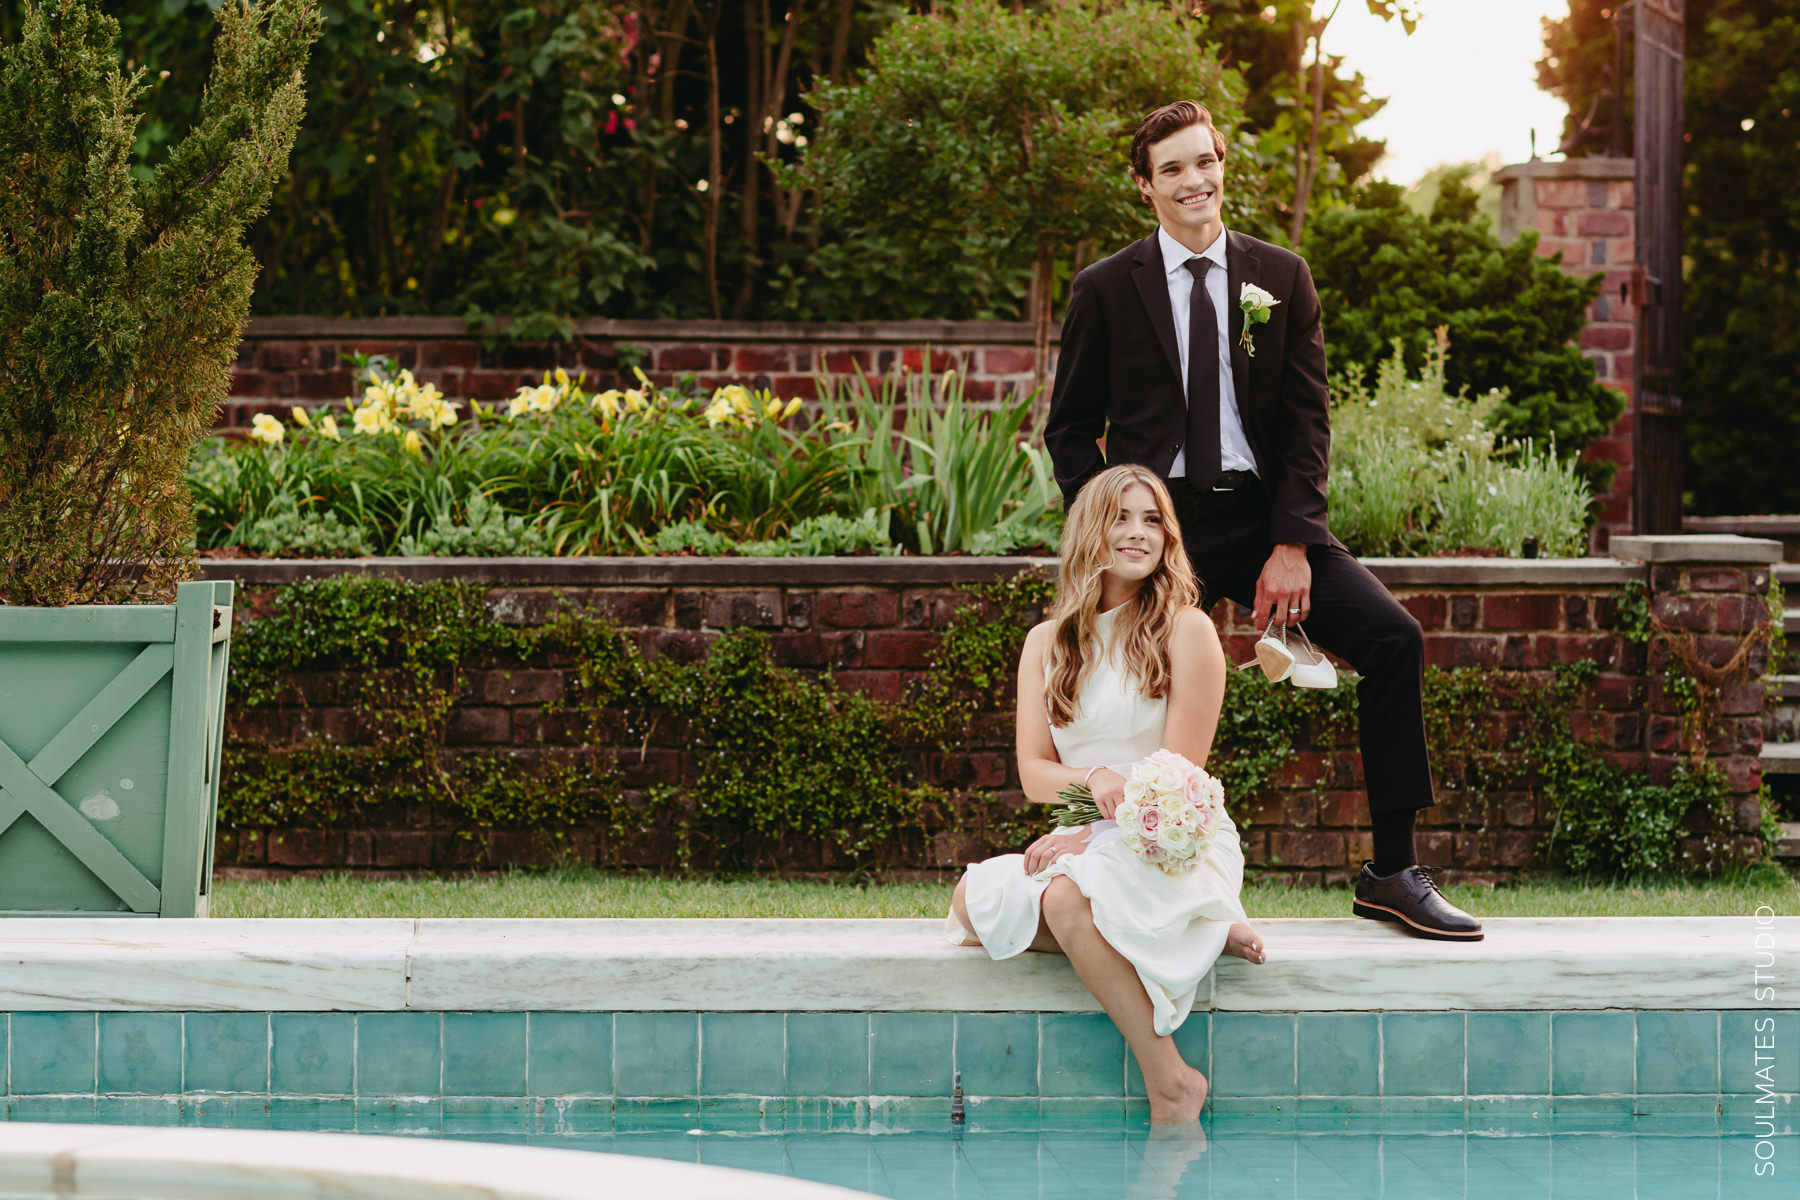 Planting Fields Intimate Elopement Wedding | Oyster Bay, Long Island, New York